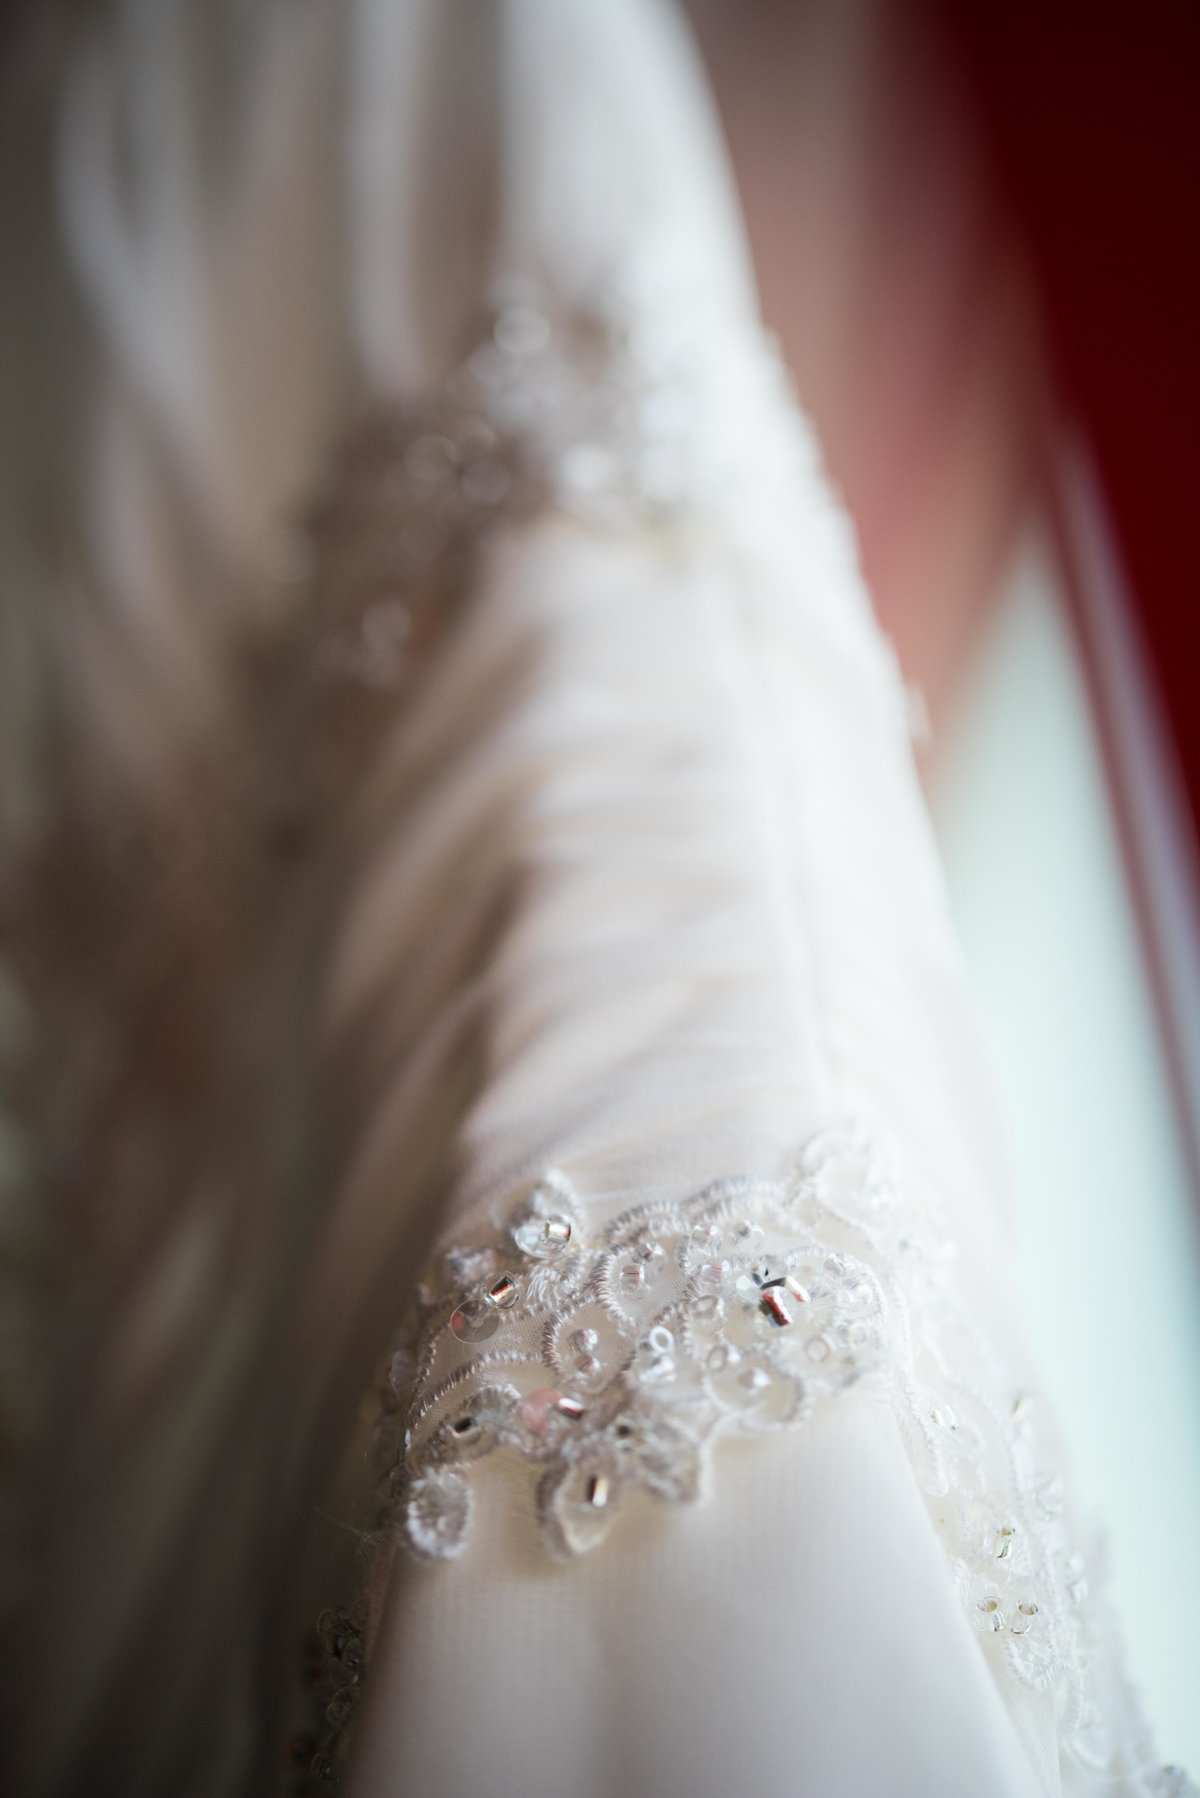 Wedding dress detail, Chicago IL.